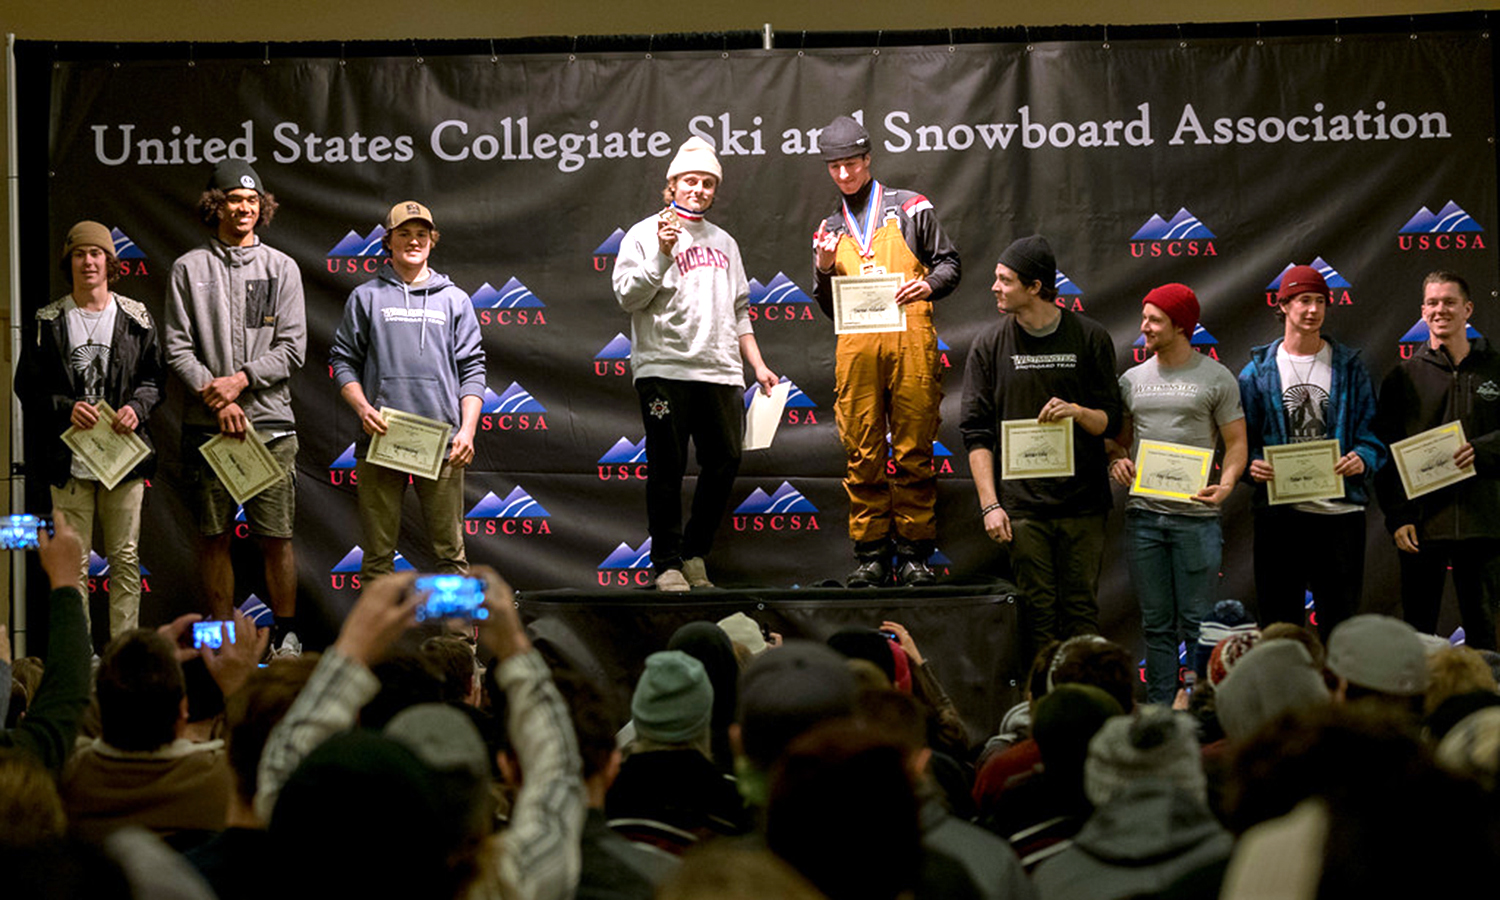 Myles Silverman '19 poses for a photo after finishing first in both the giant slalom and slalom at the  United States Collegiate Ski and Snowboard Association (USCSA) National Championship in Lake Placid, N.Y.